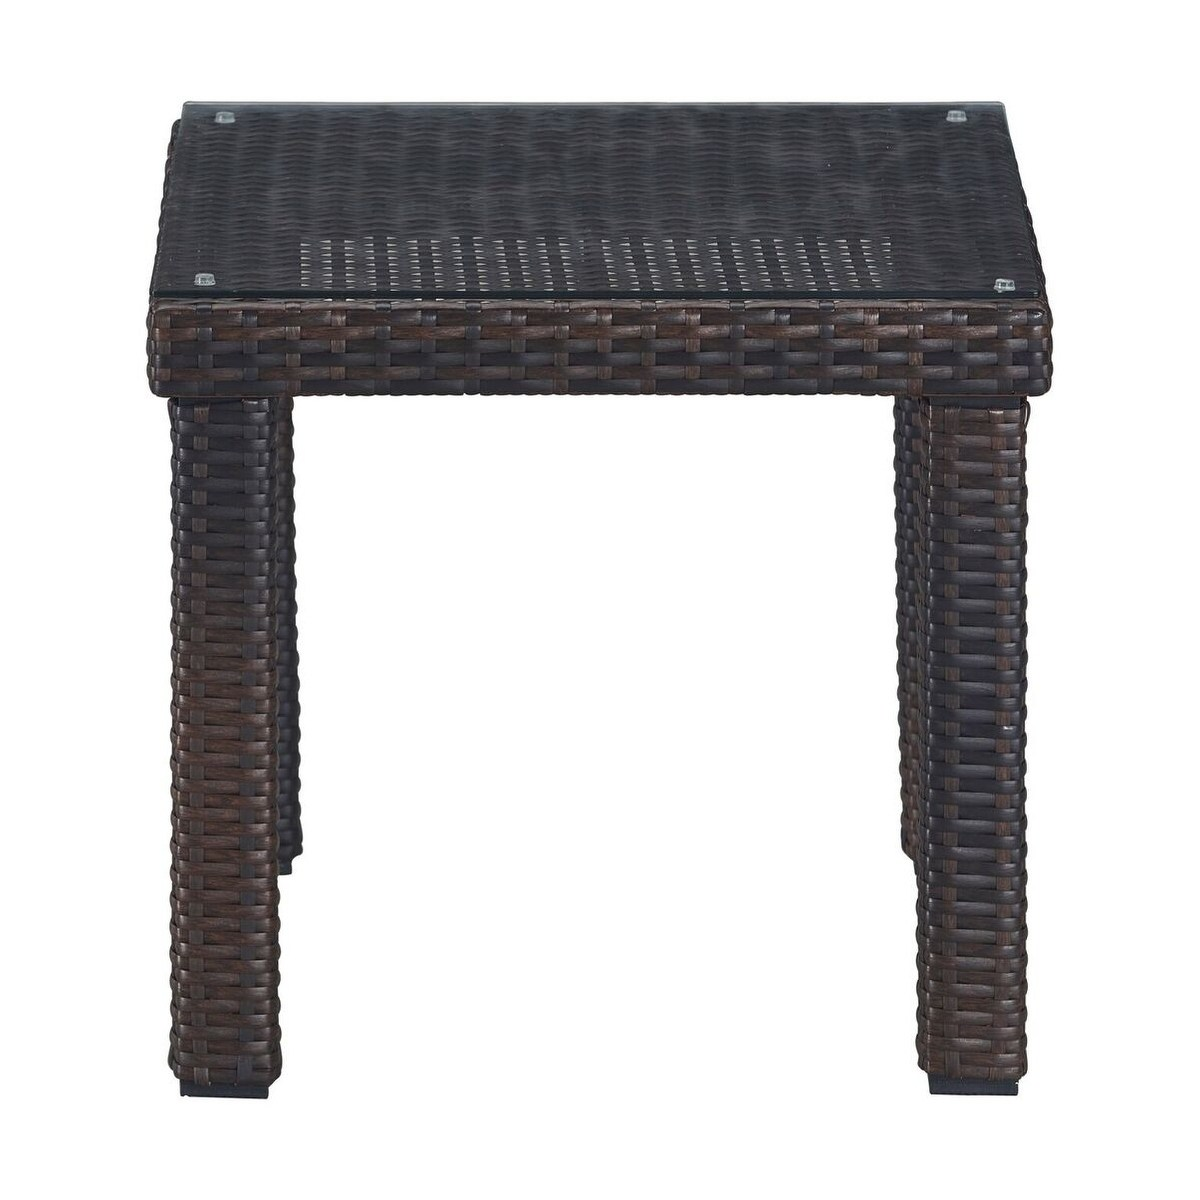 serta tahoe outdoor side table terra brown wicker free shipping today dining chairs with arms hairpin furniture legs waterford lamps narrow telephone floor transitions for uneven